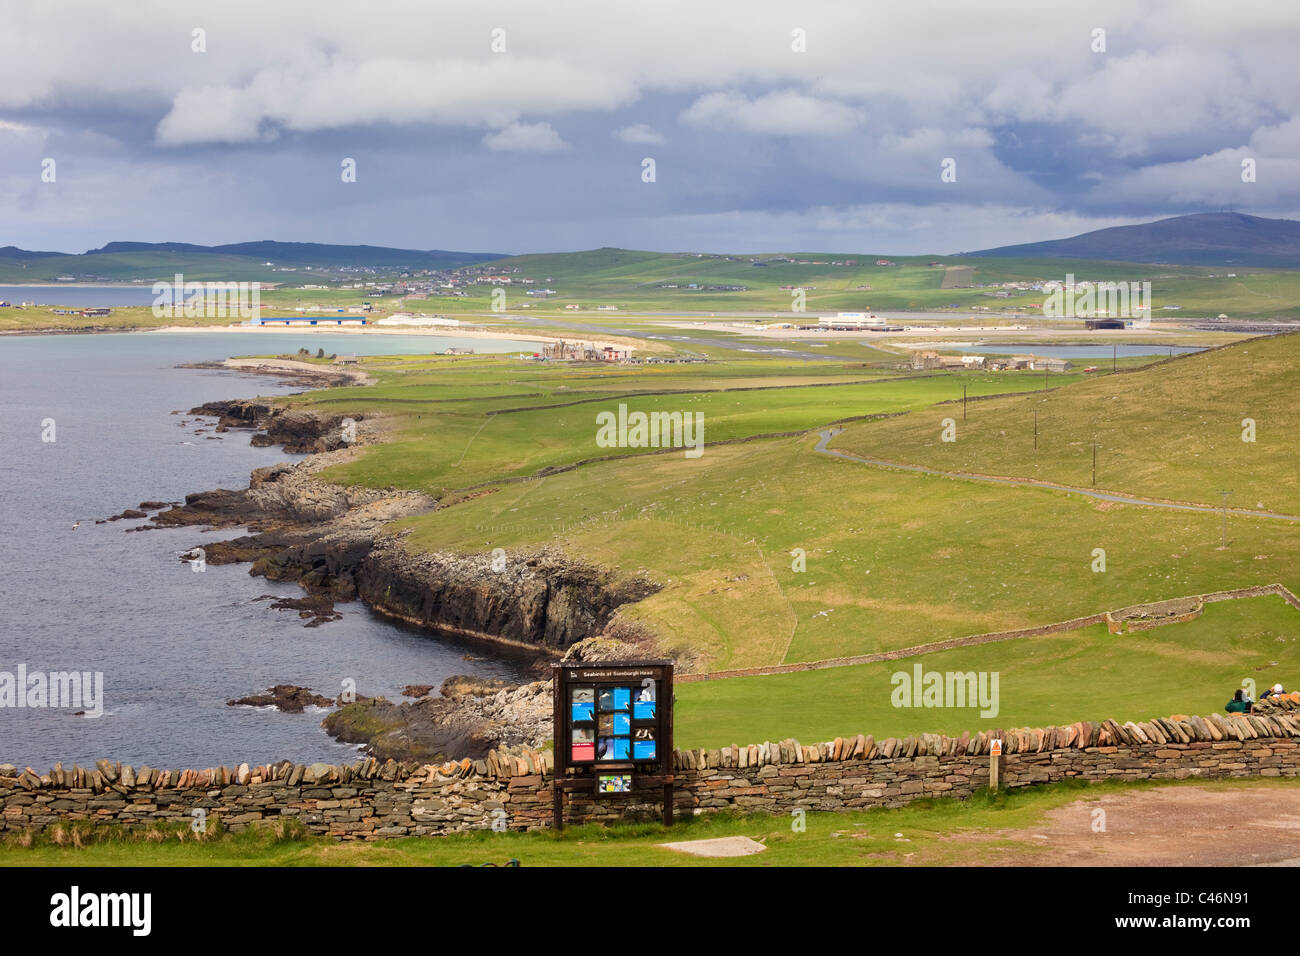 View along the coast to the airport from Sumburgh Head at Sumburgh, South Mainland, Shetland Islands, Scotland, - Stock Image